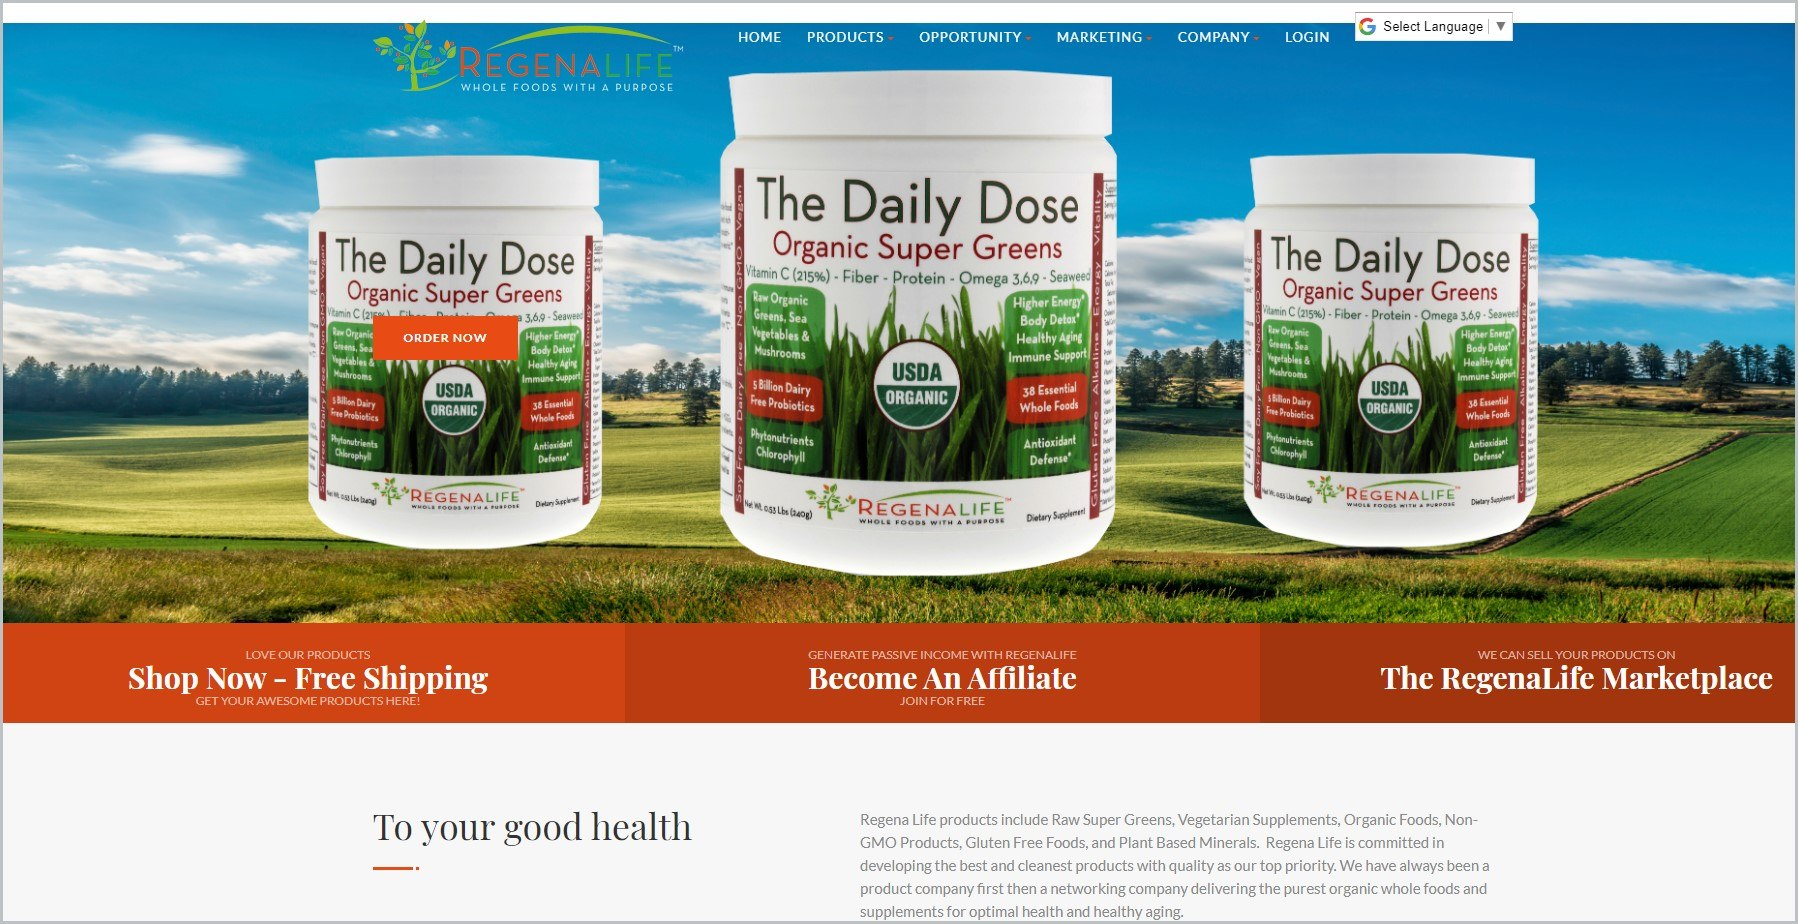 screenshot of Regena Life homepage with blue header bearing the website's name and main navigation menu, it showcases 3 images of different products with an open field and blue sky as background